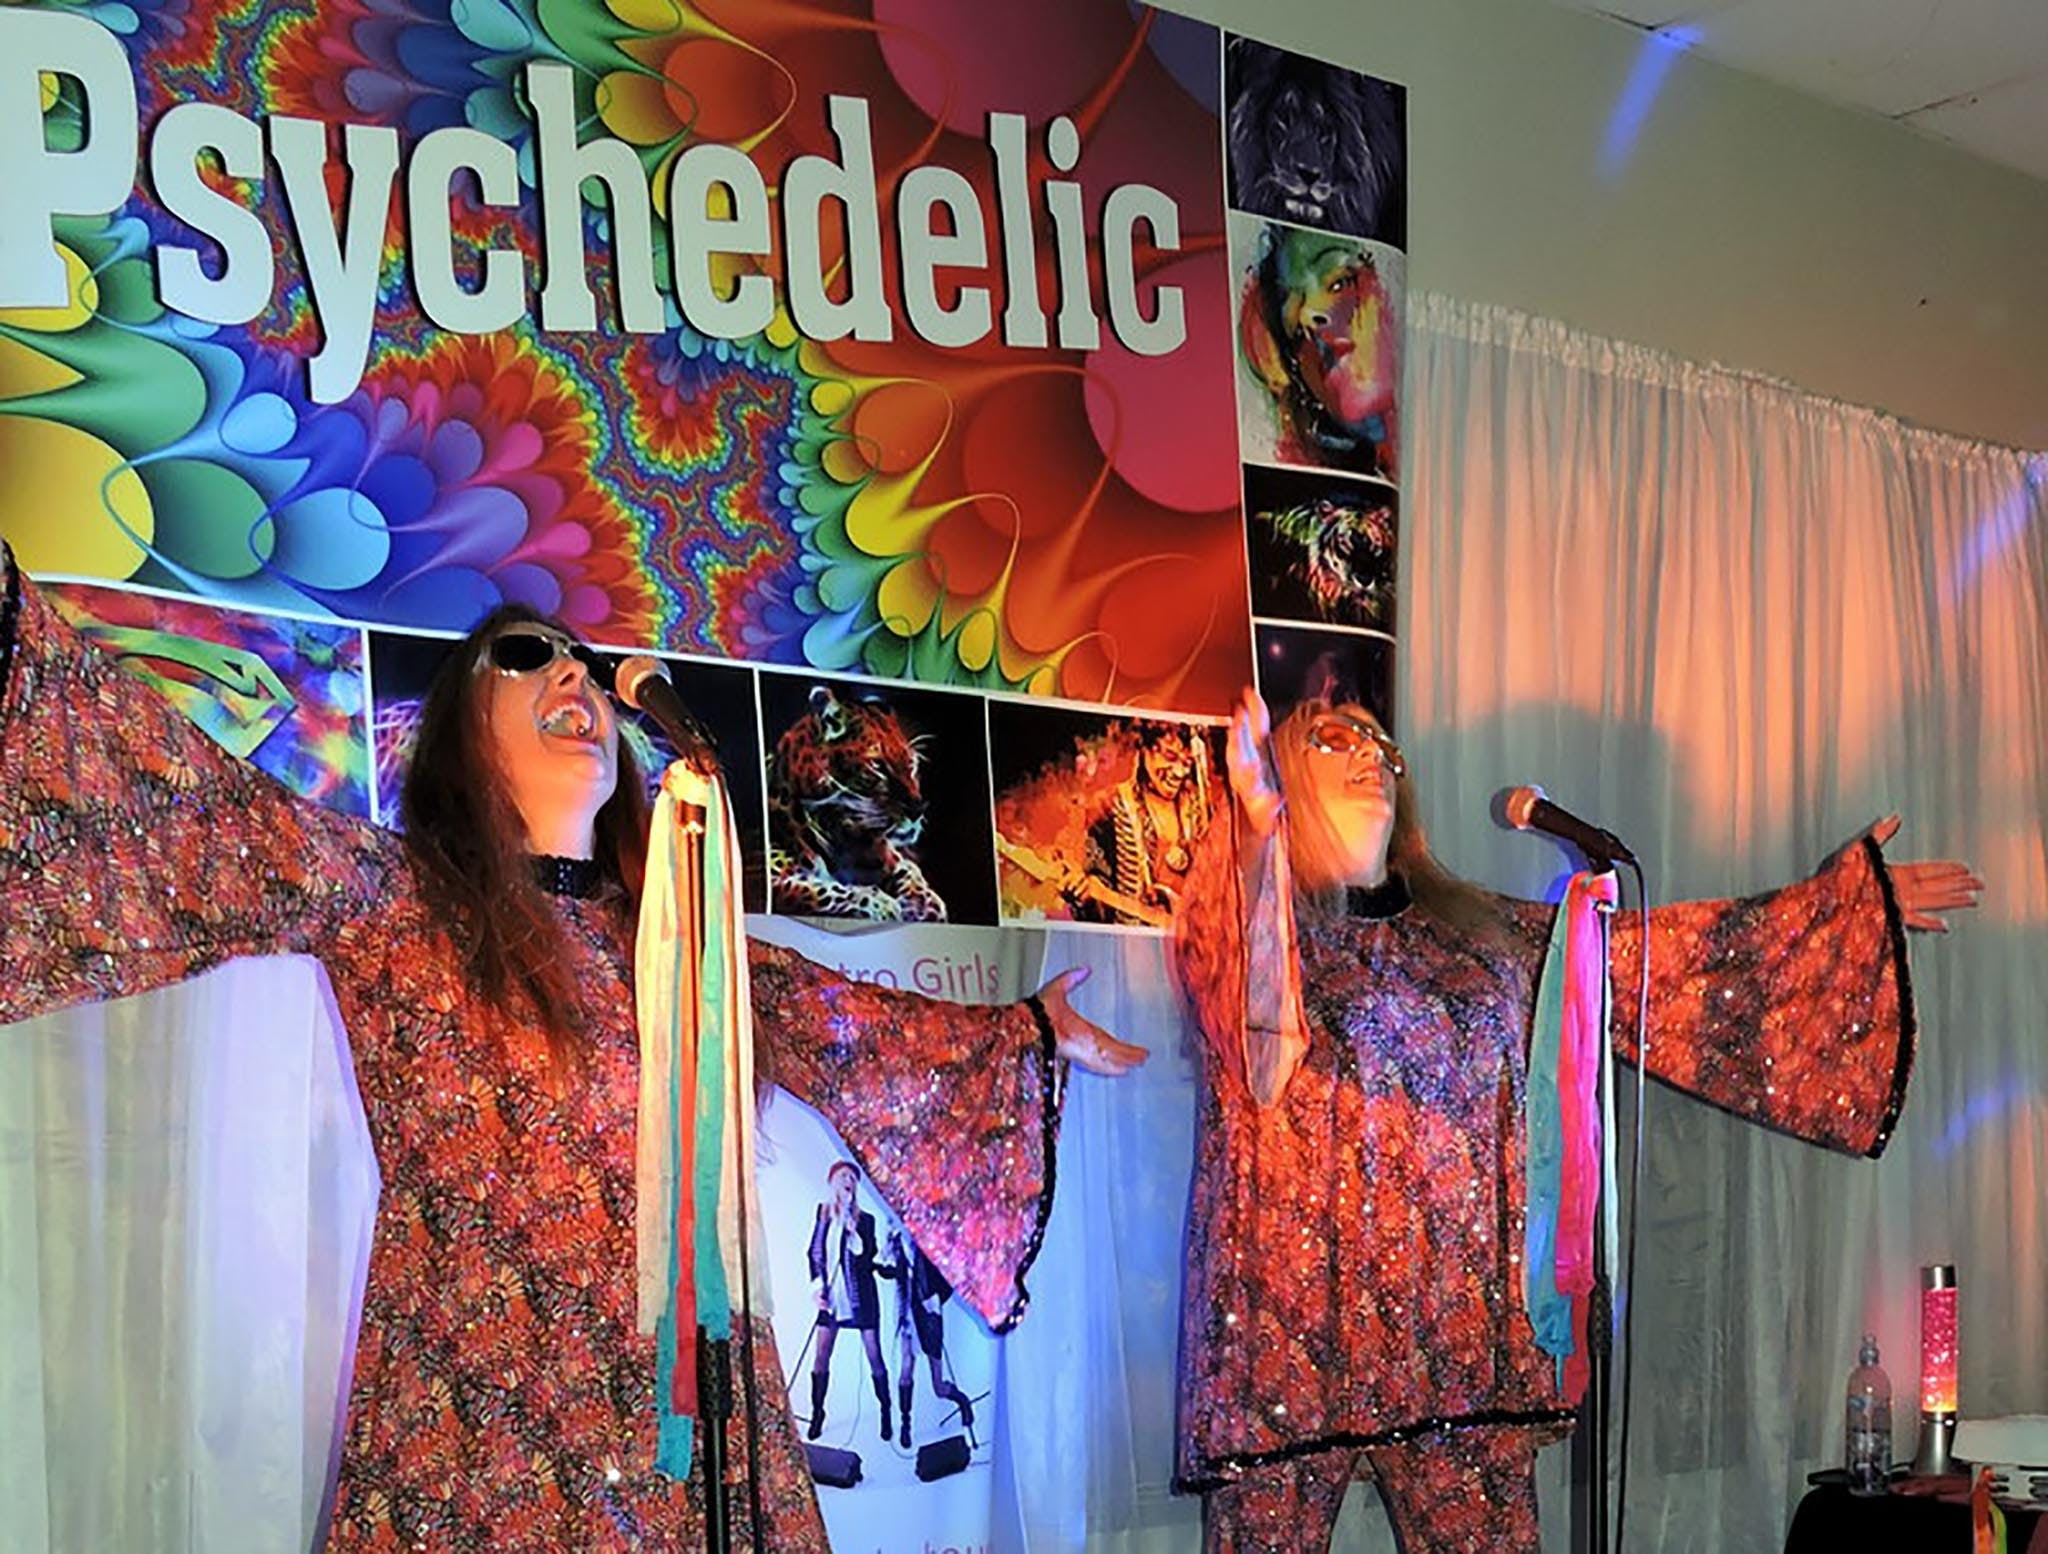 Psychedelic 70s Show The Retro Girls - Stayed